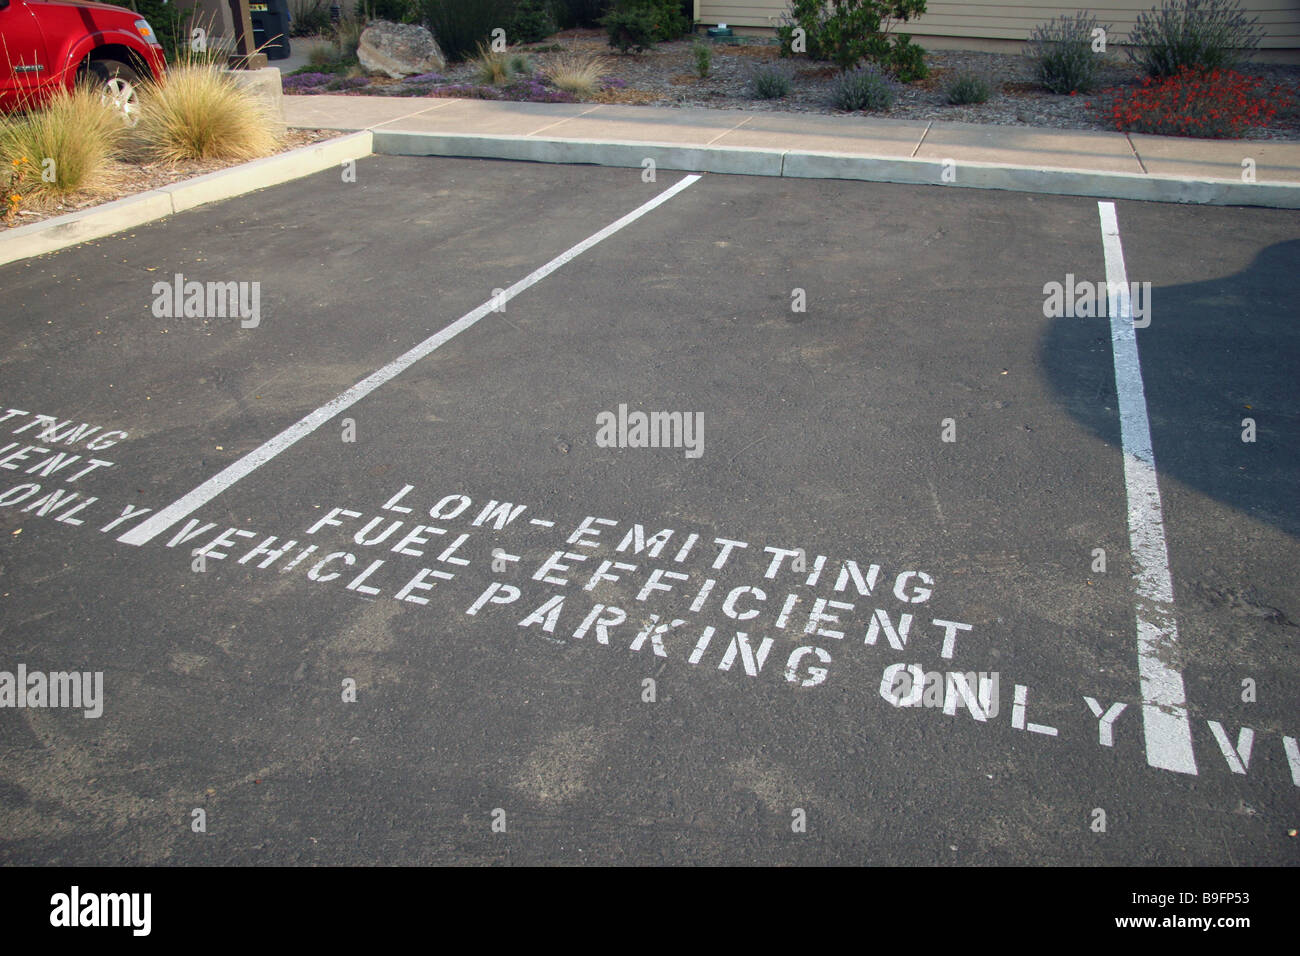 Parking spots designated for Low Emitting Fuel Efficient cars at the GAIA Napa Valley Hotel, American Canyon, California. - Stock Image